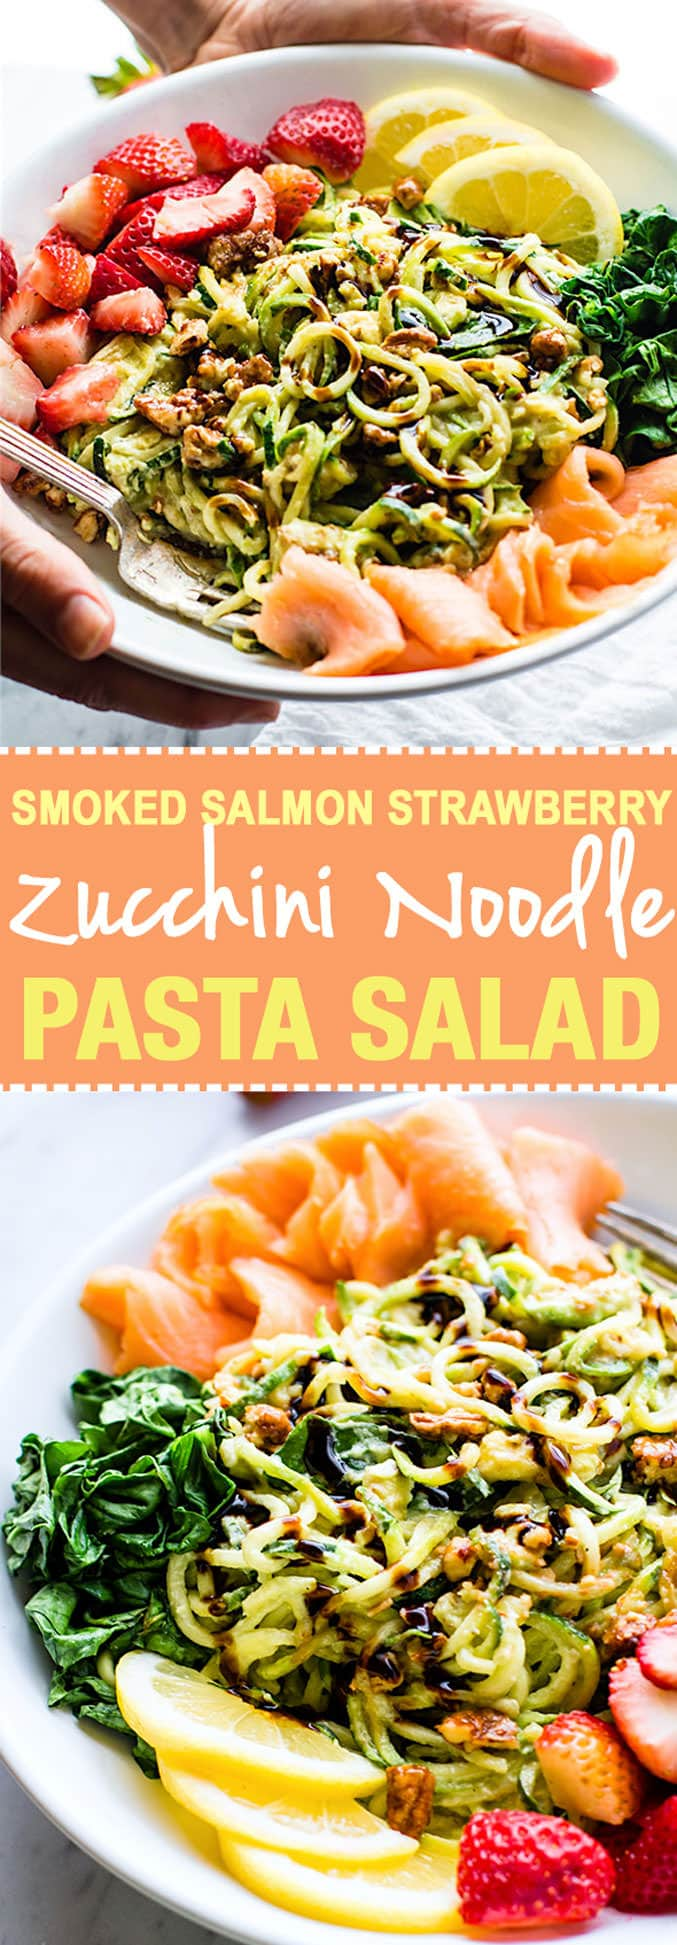 Smoked Salmon and Strawberry Zucchini Noodle Pasta Salad! A healthy lower carbZucchini noodle pasta salad witha creamyavocado sauce and paired with the freshstrawberries, spinach, and smoked salmon. This gluten free Salad bowl is perfectfor aspring or summer lunch or side dish. Clean ingredients, real food, UNREAL GOOD! @cottercrunch